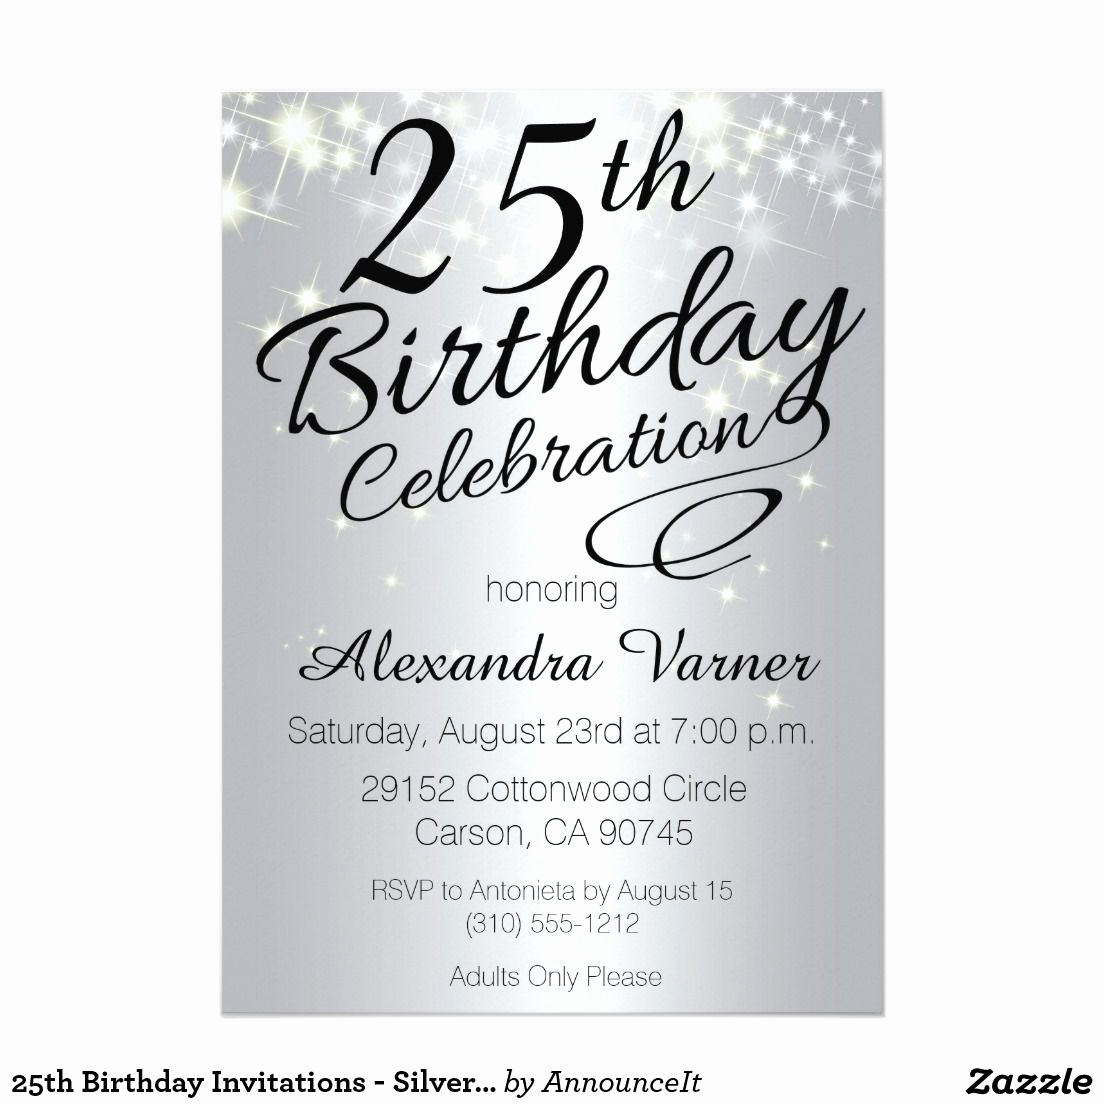 25th Anniversary Invitation Cards Lovely 25th Birthday Invitations Silver Sparkly Invites